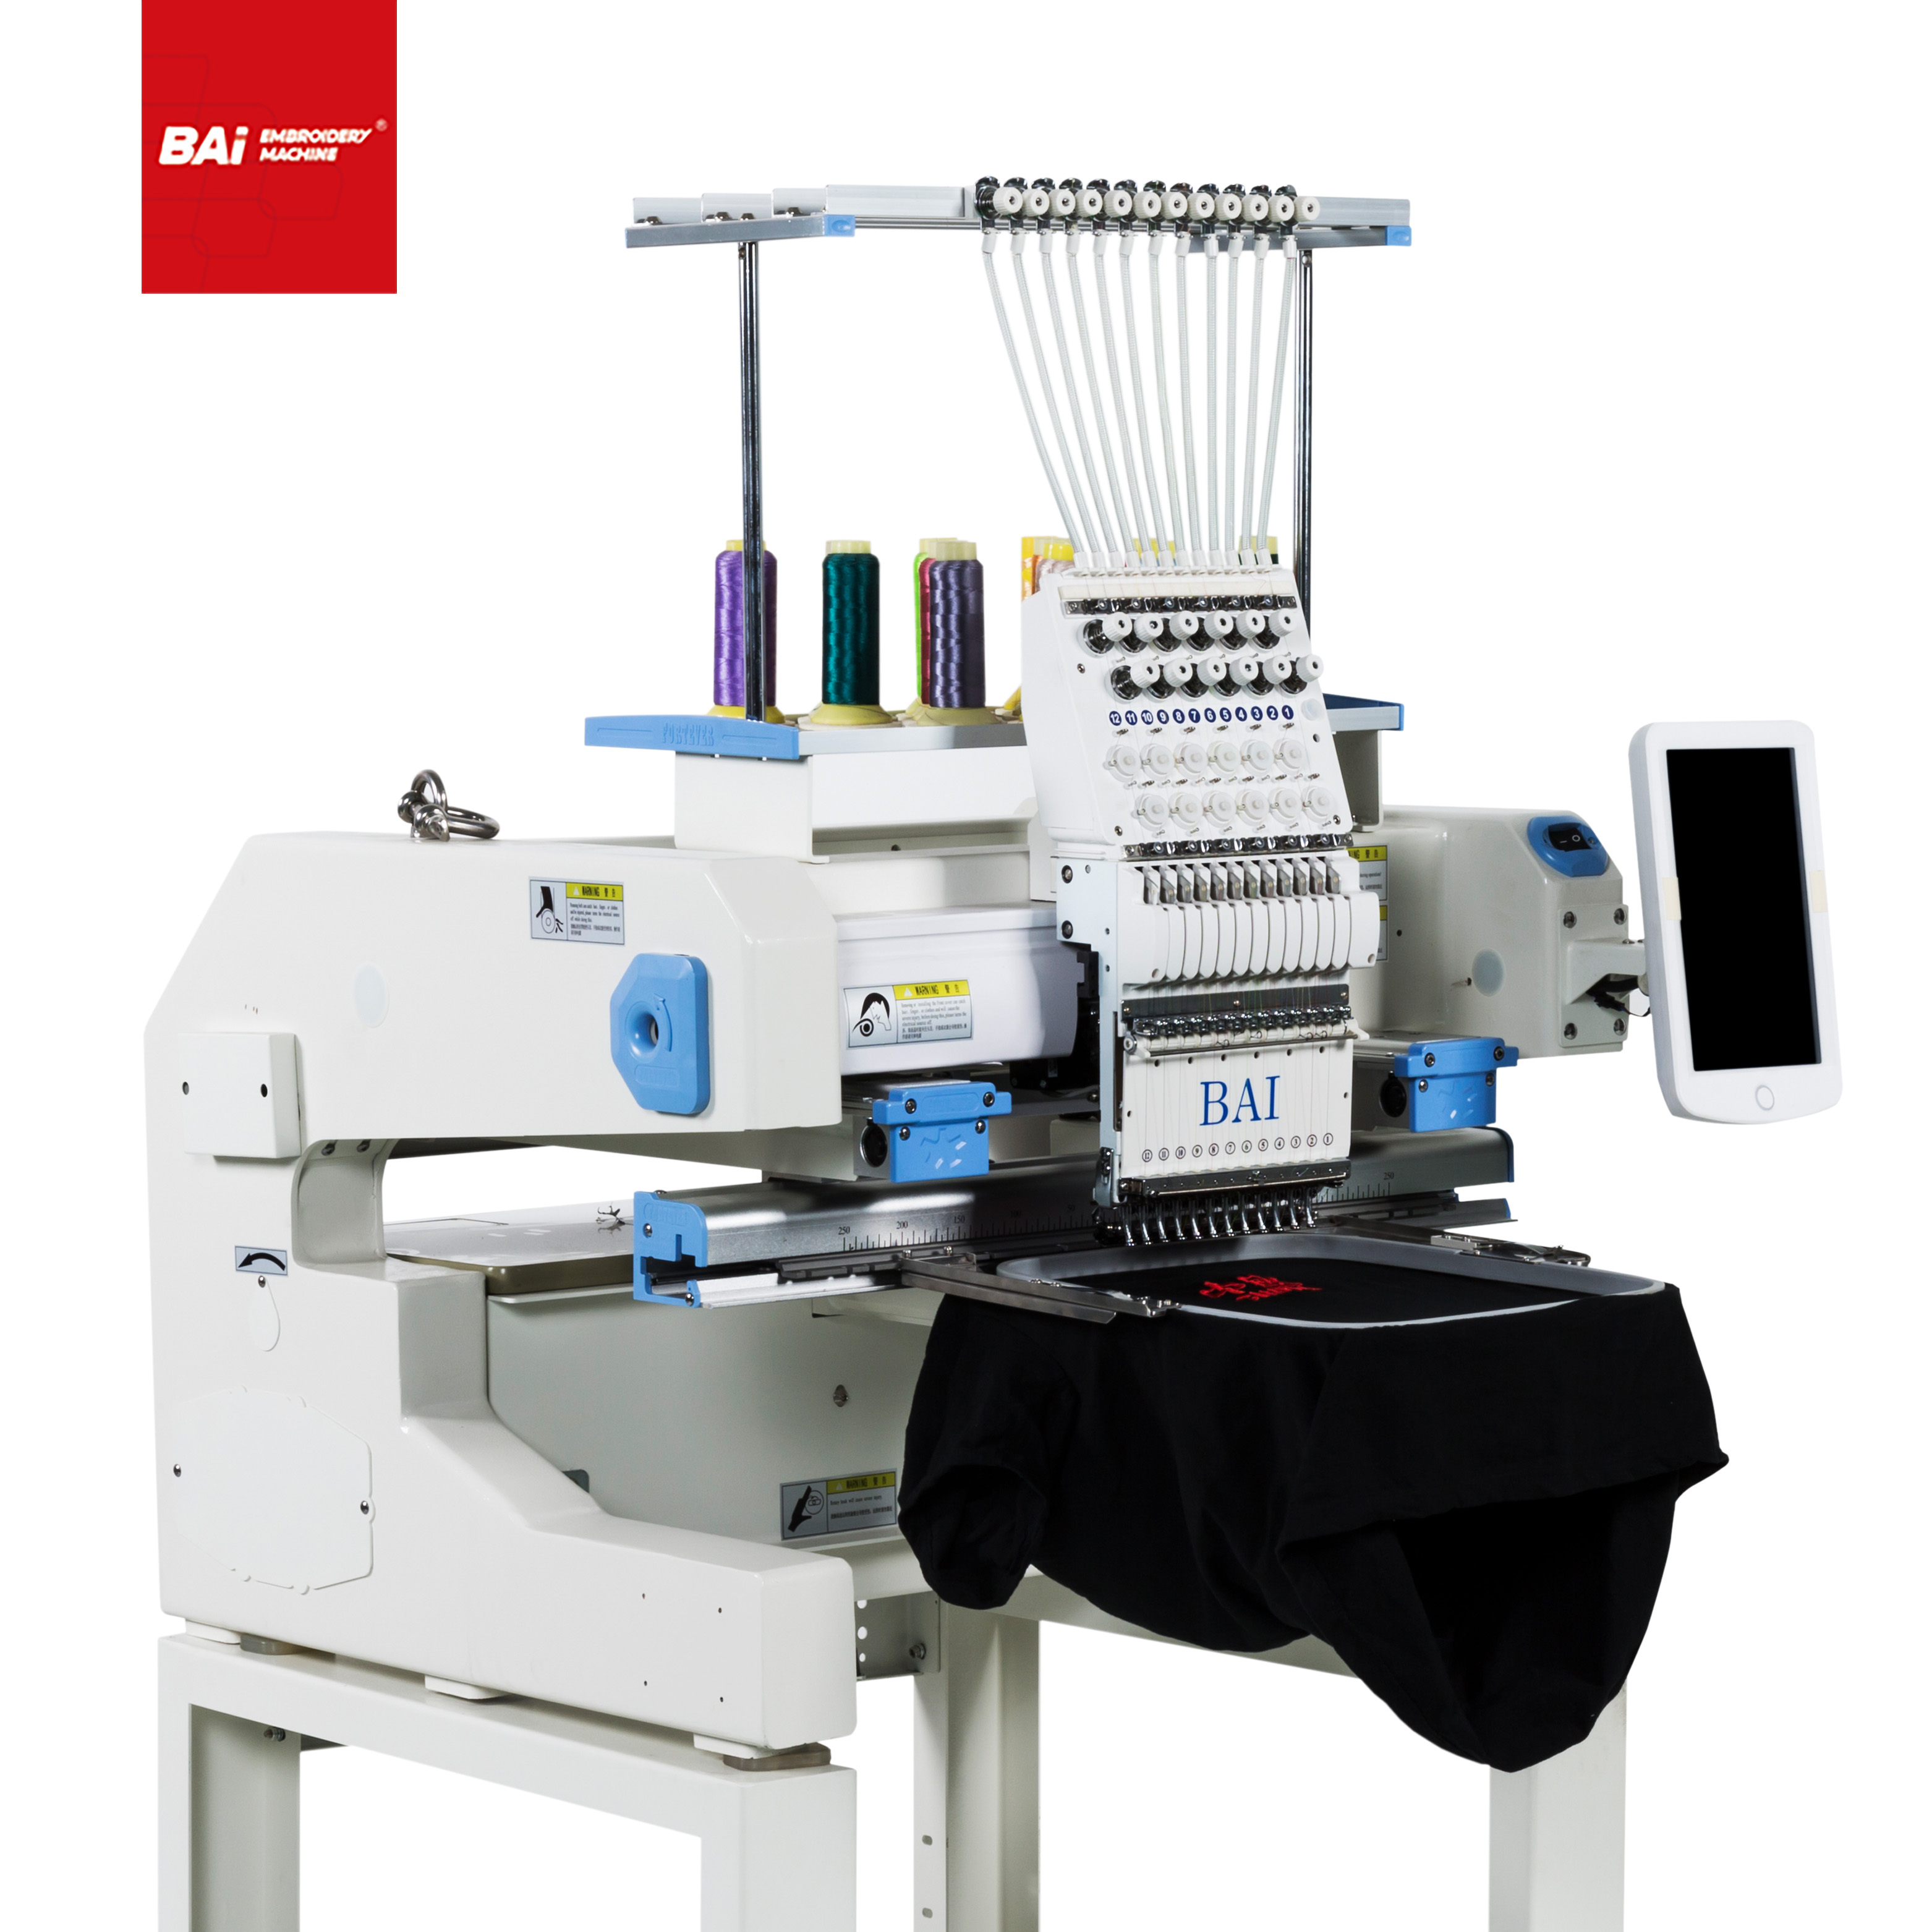 BAI Mixed Embroidery Machine with Low Price for Cheap Price for China